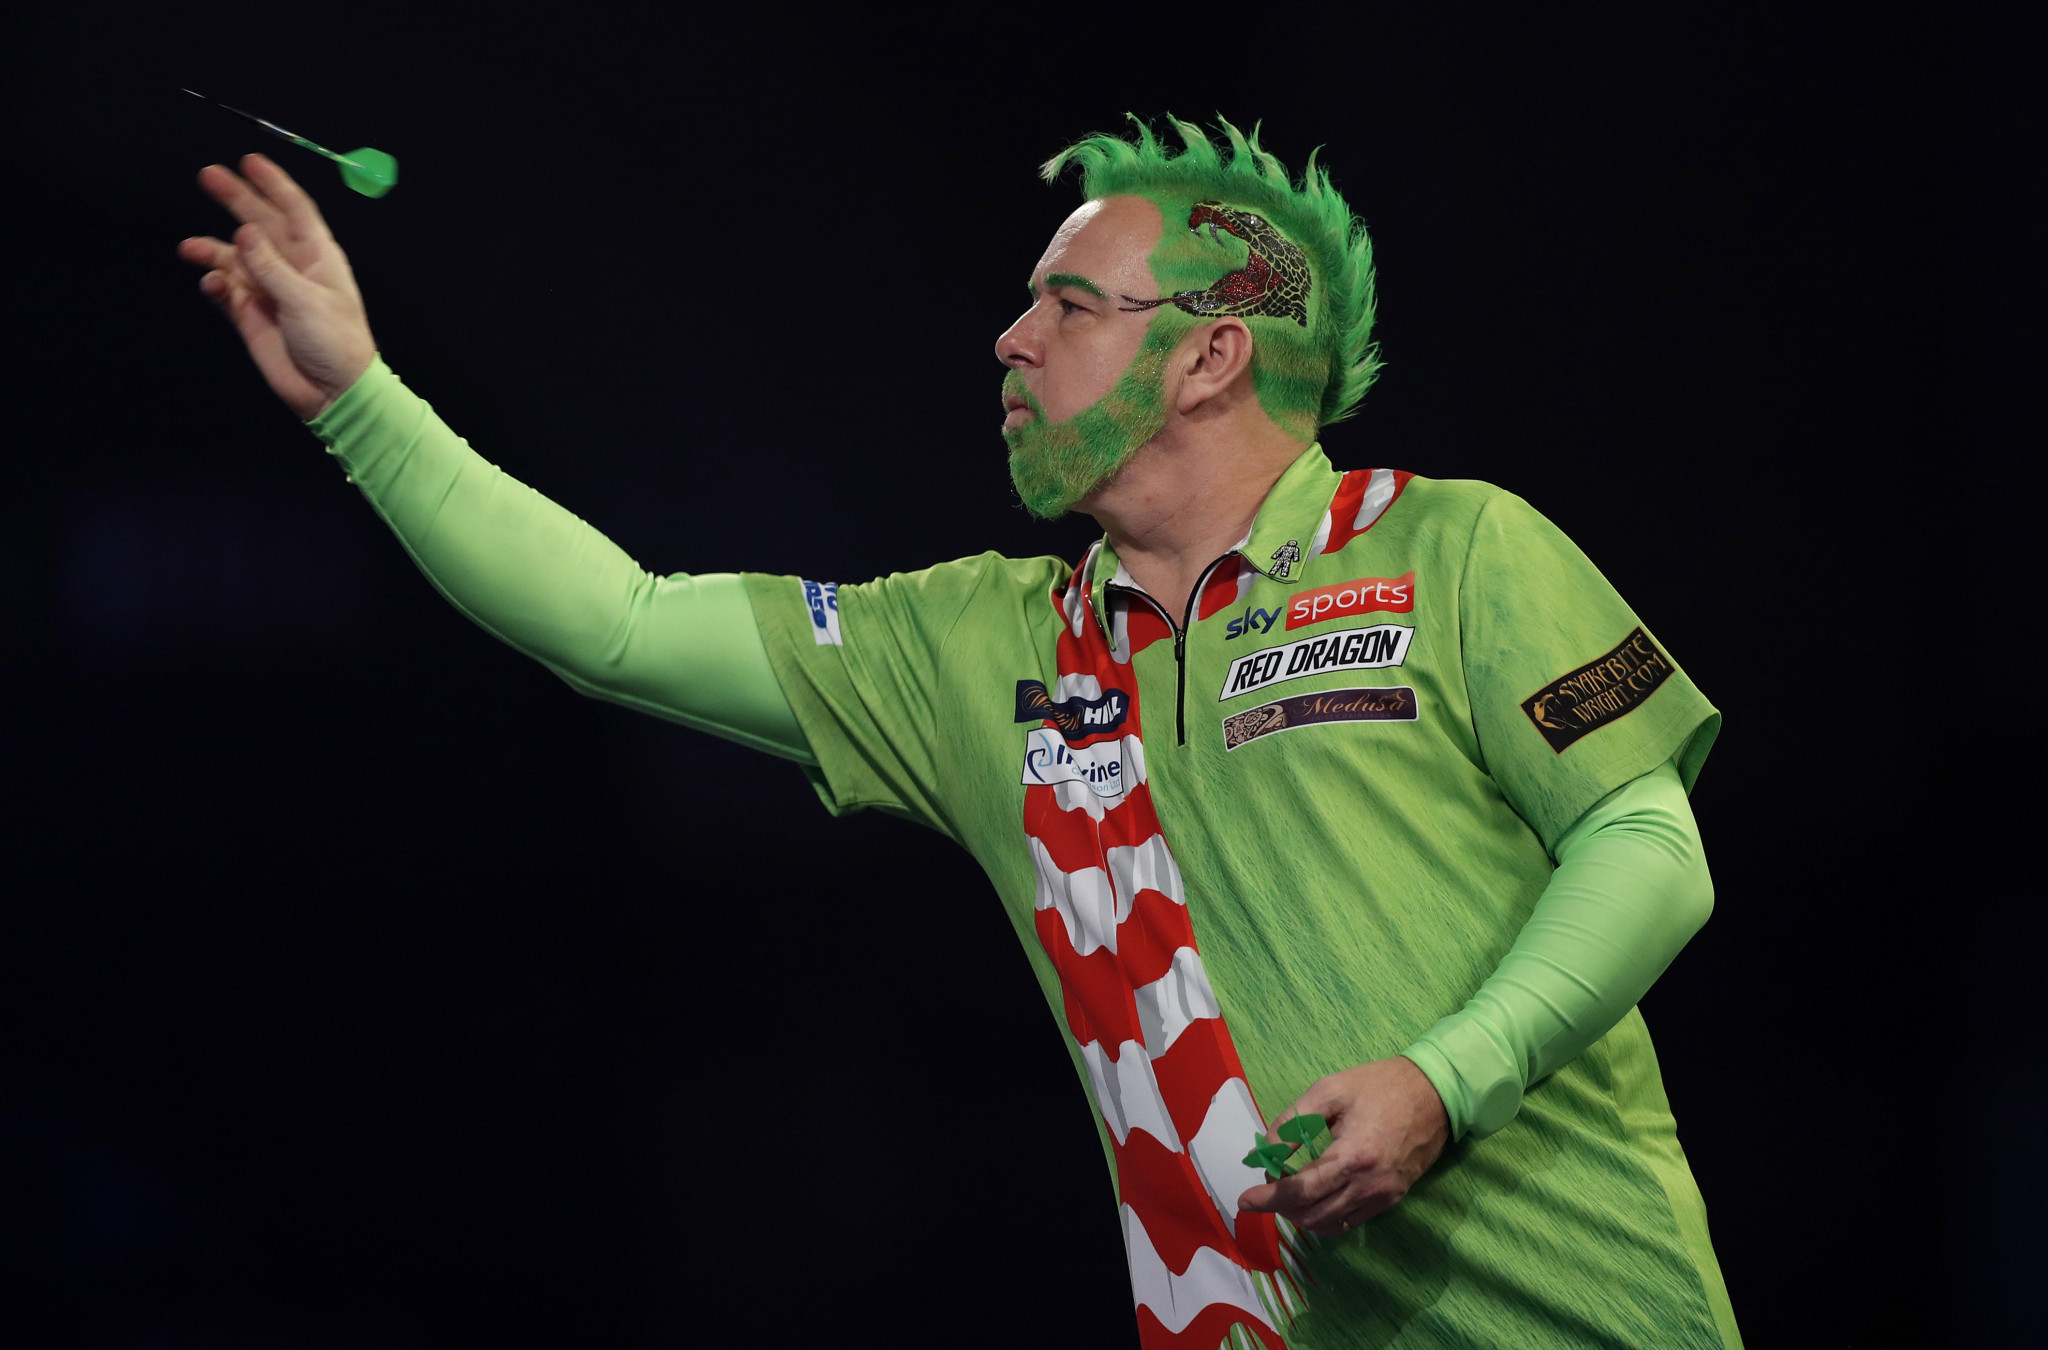 Wright into third round as PDC World Darts Championship begins